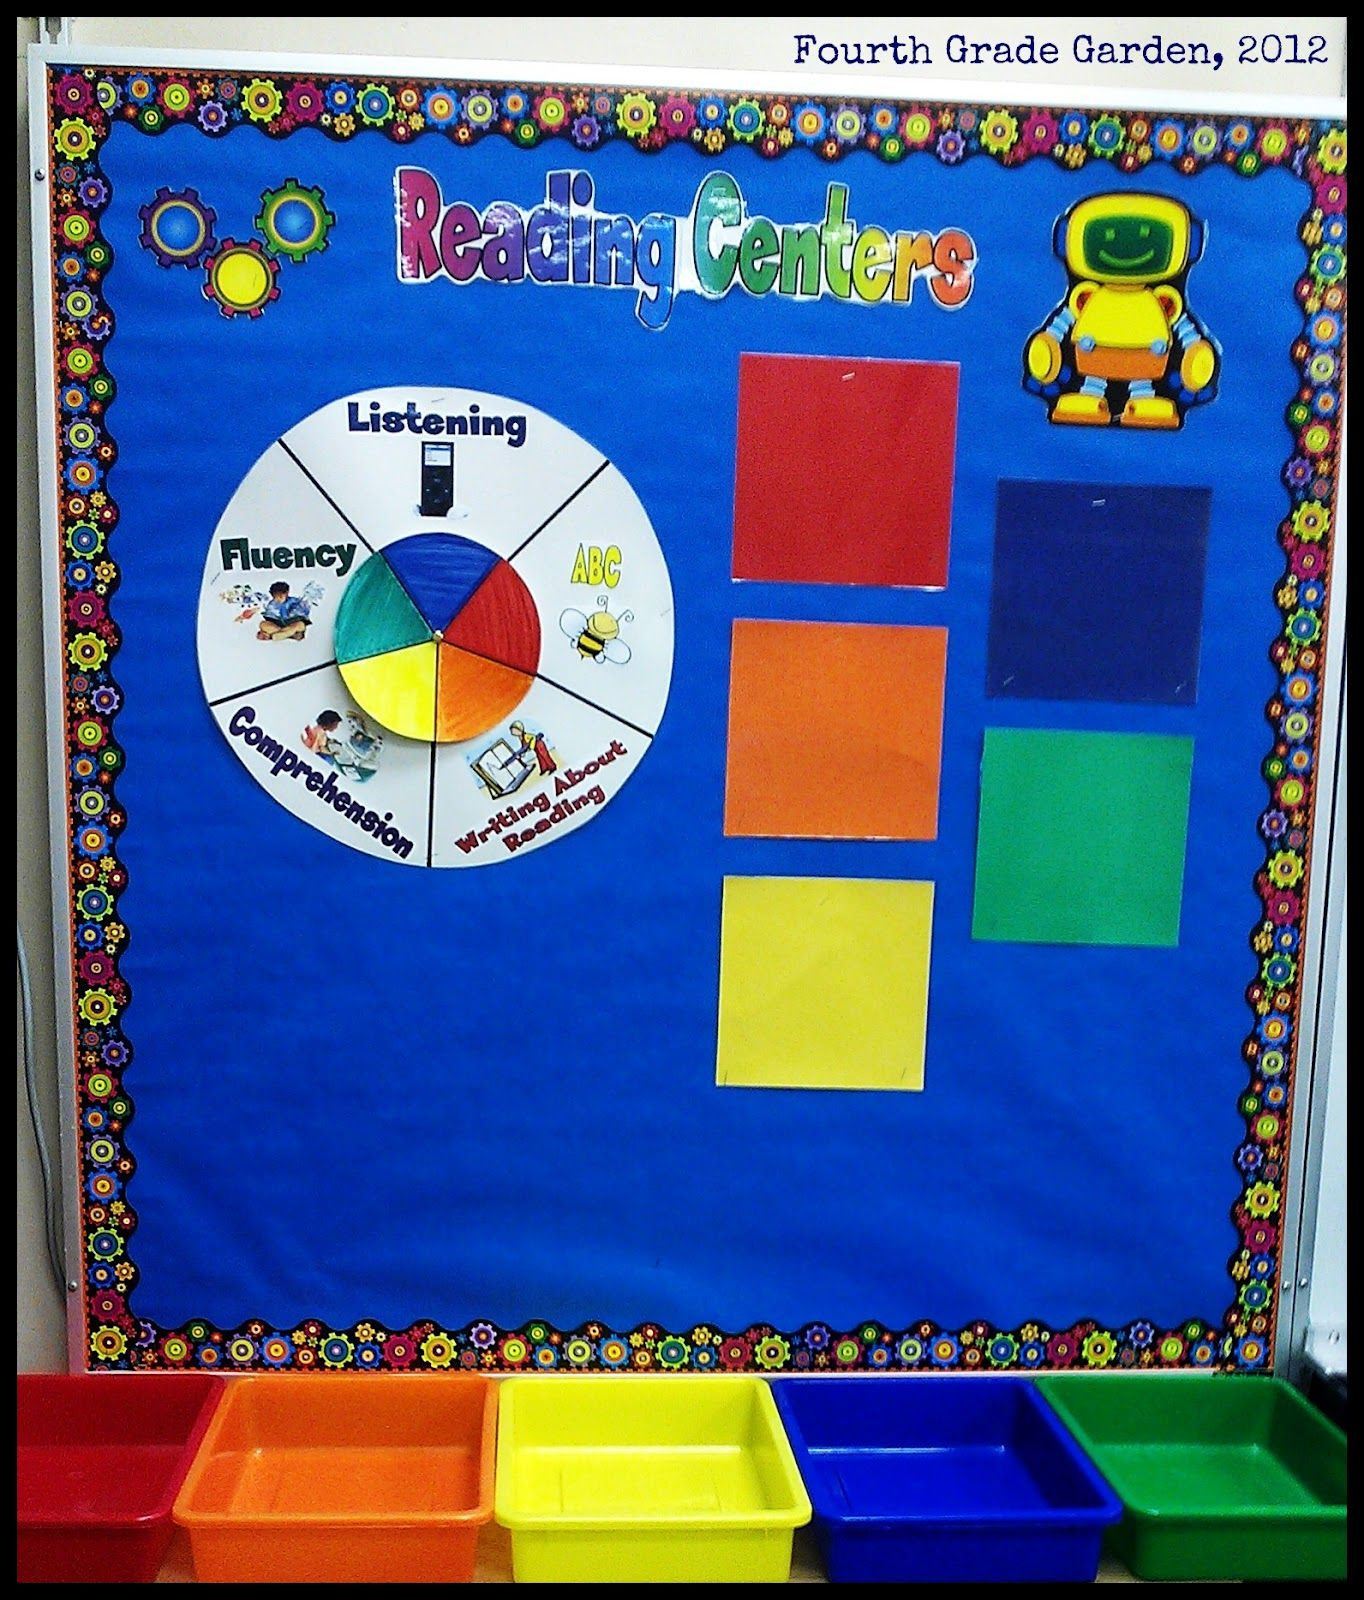 Fourth Grade Garden Reading Center Wheel